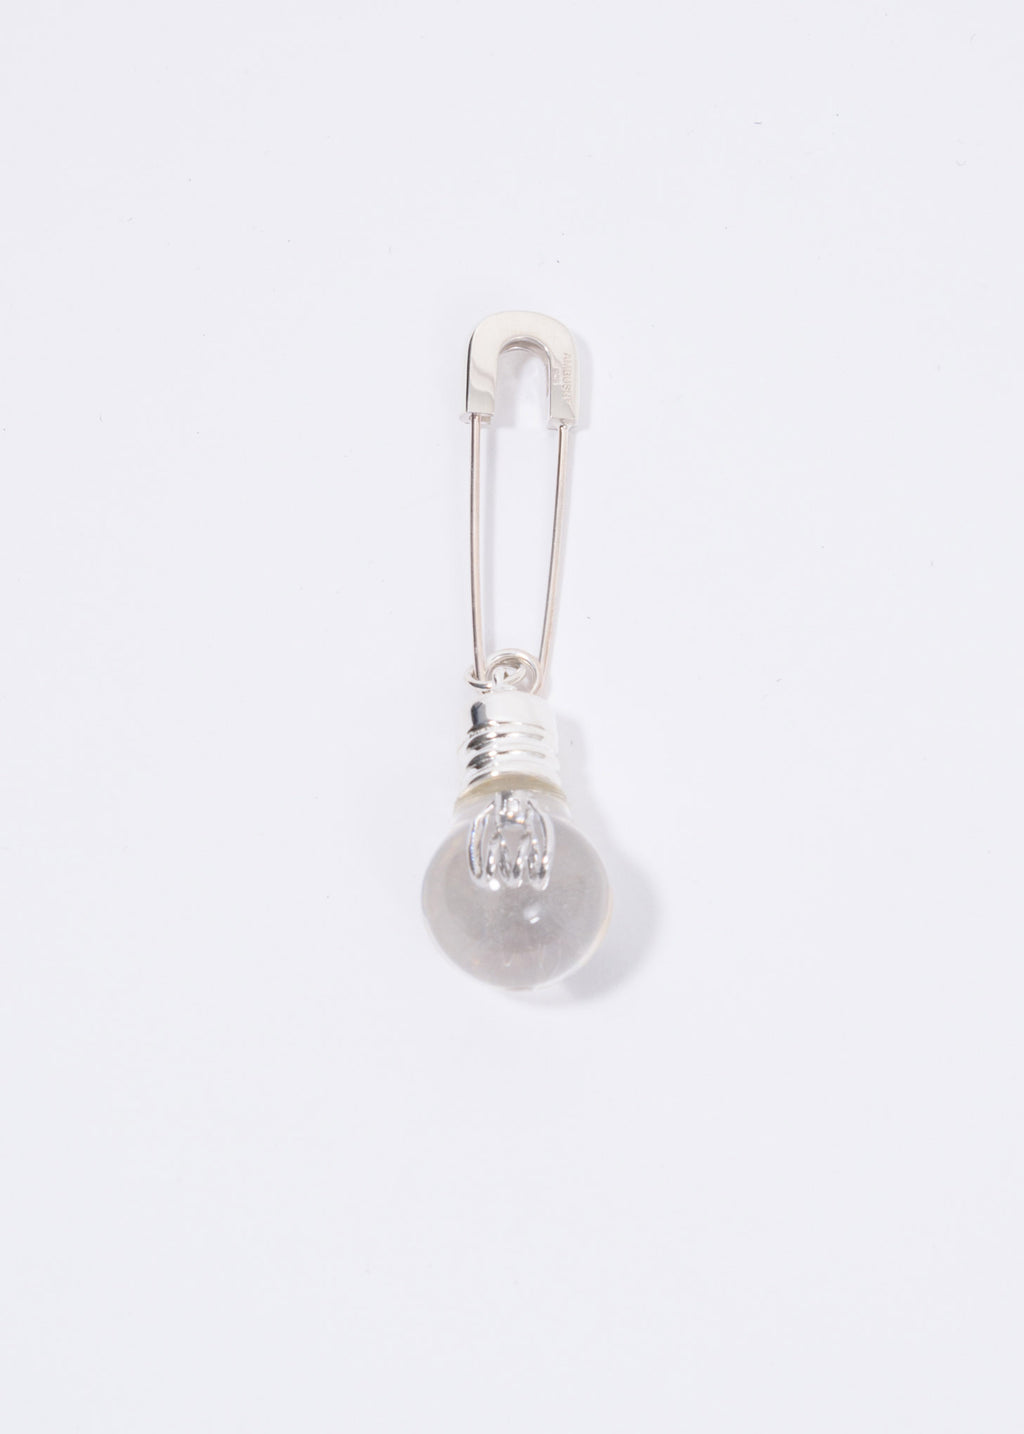 Ambush, Silver Light Bulb Single Earring, 017 Shop